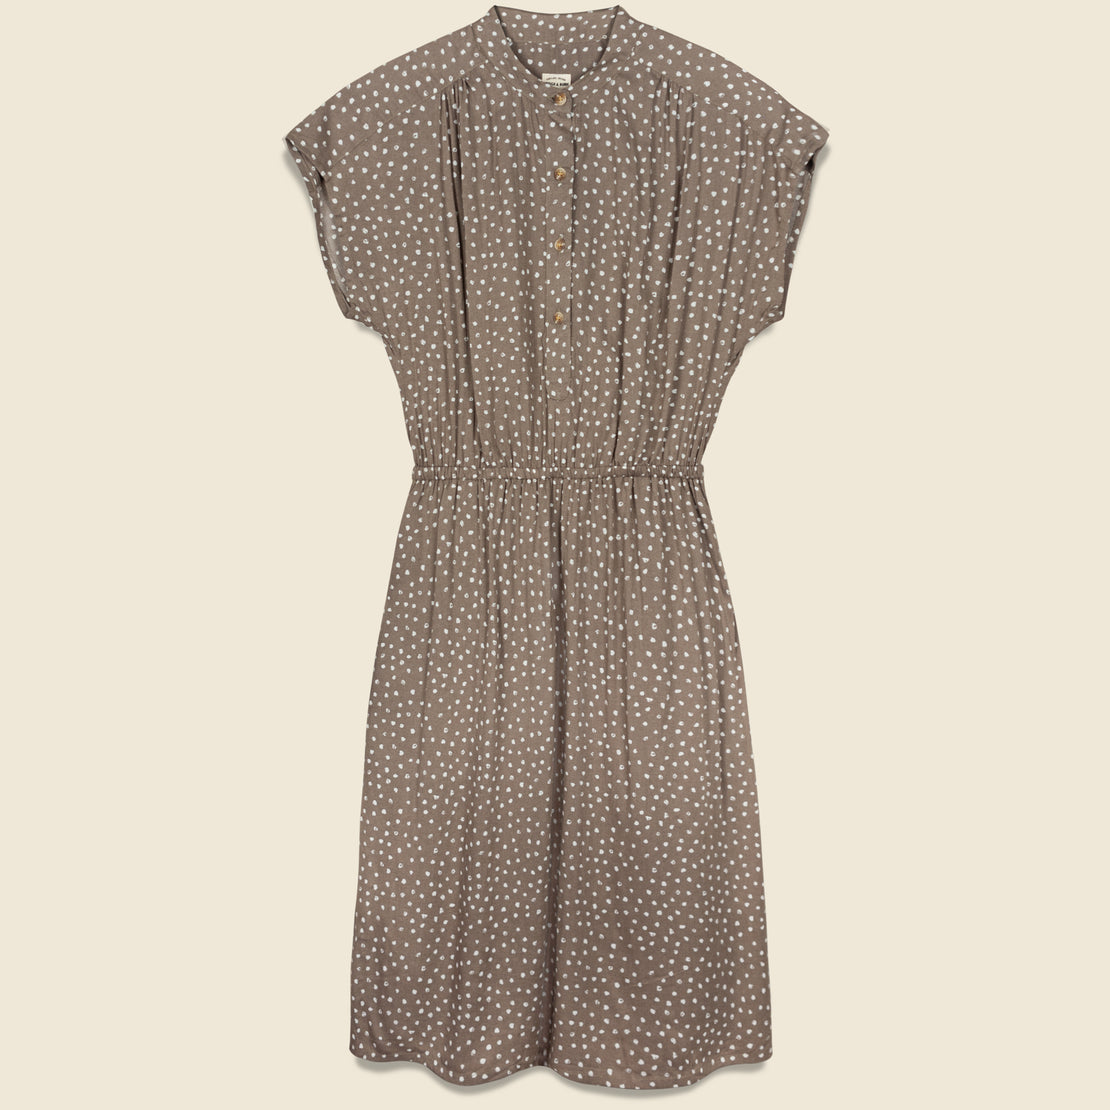 Bridge & Burn Lorane Dress - Tan Dot